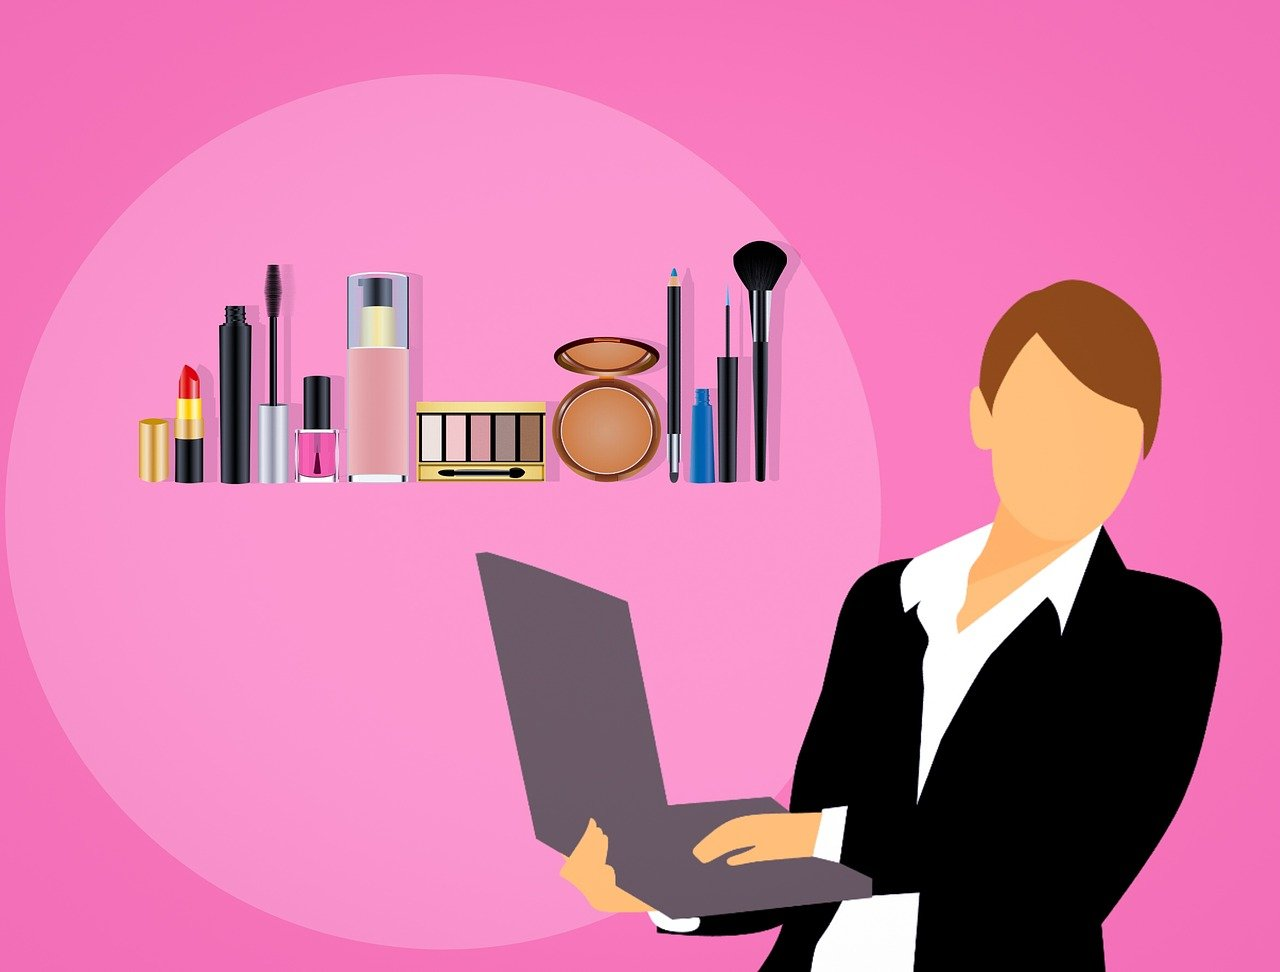 Get all your beauty products in an online cosmetic store